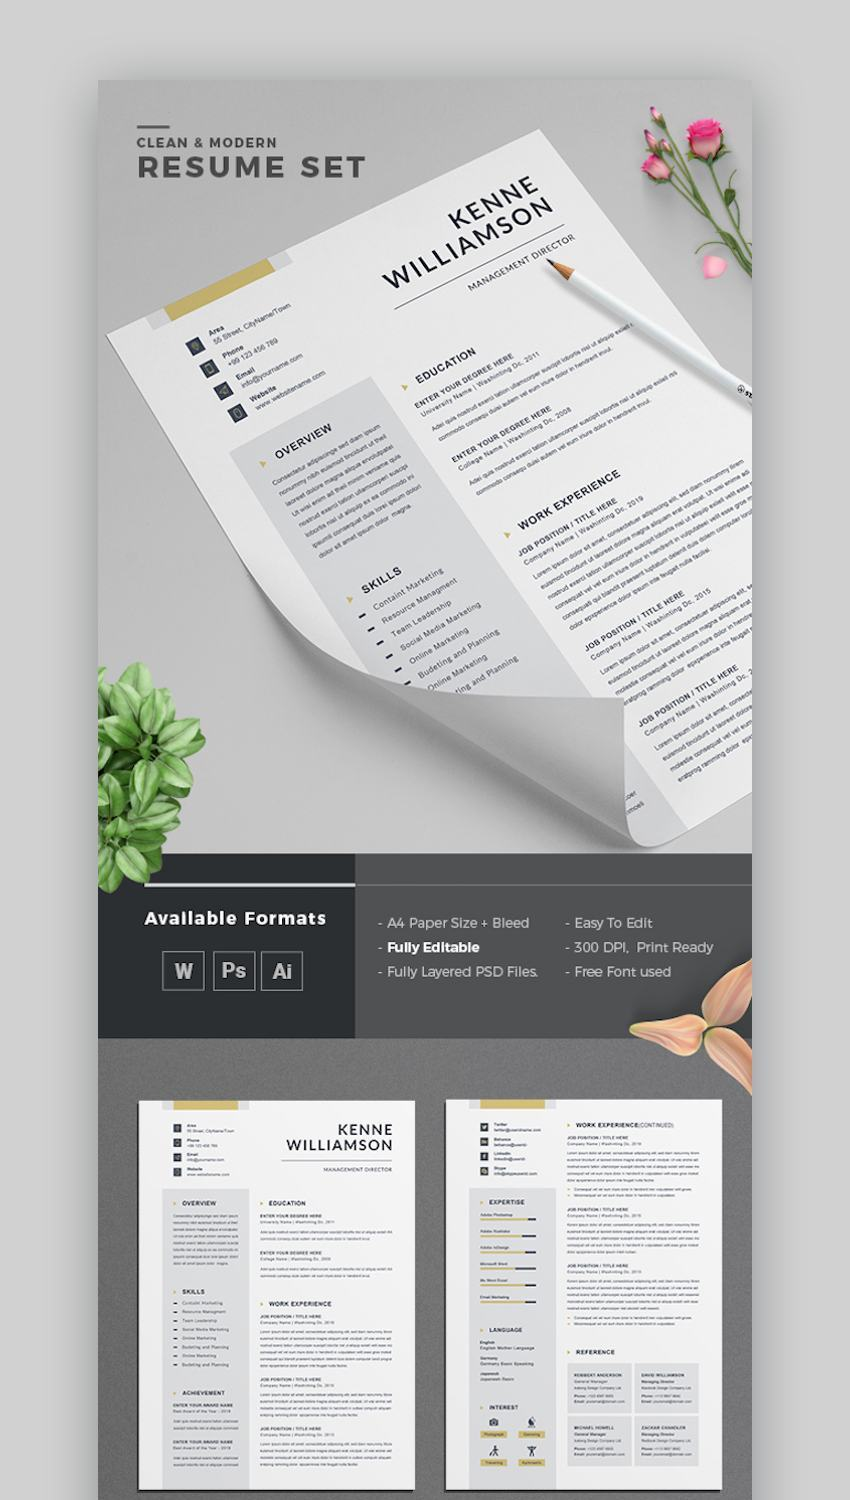 25 Modern Resume Templates With Clean (Elegant) CV Designs